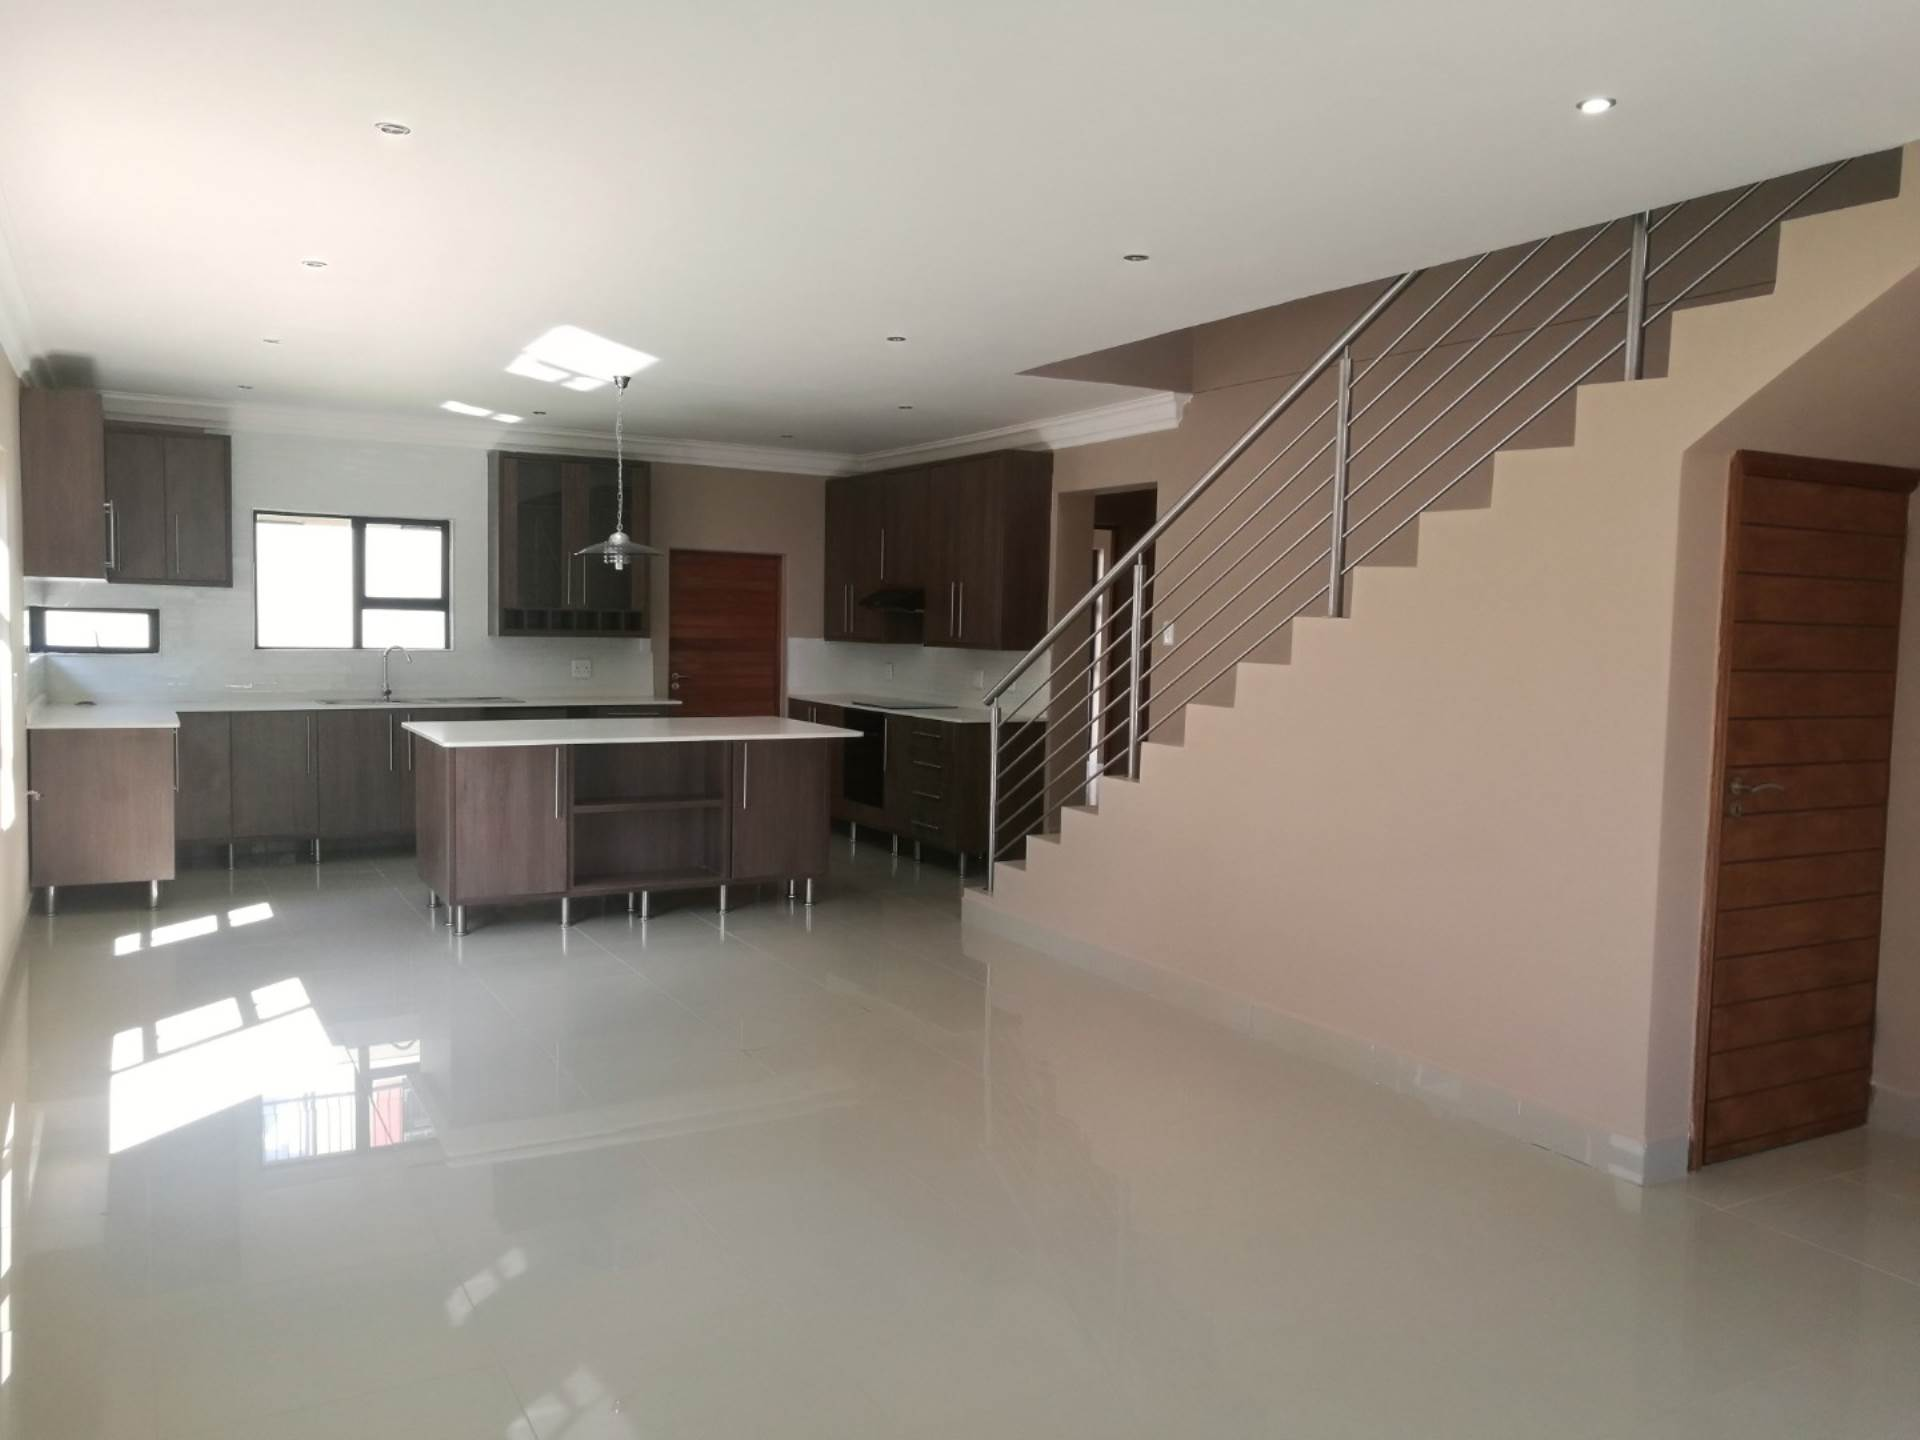 3 BedroomTownhouse For Sale In Wild Olive Estate